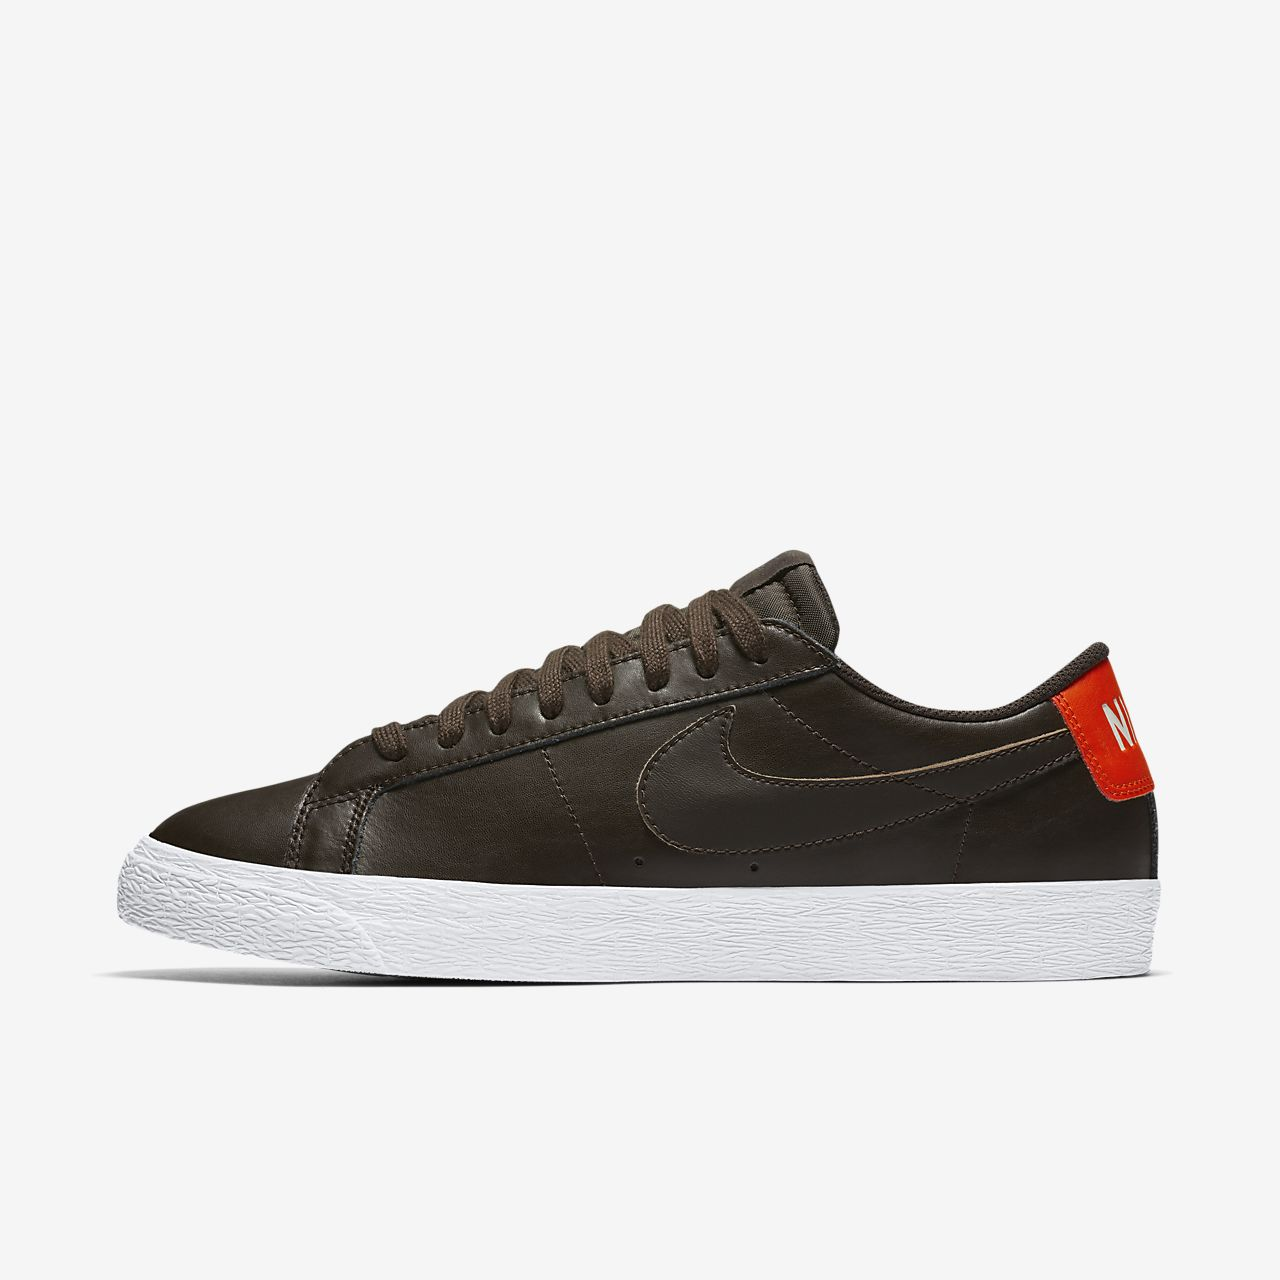 wholesale dealer c7246 c8c45 Nike SB Blazer Zoom Low Men's Skateboarding Shoe